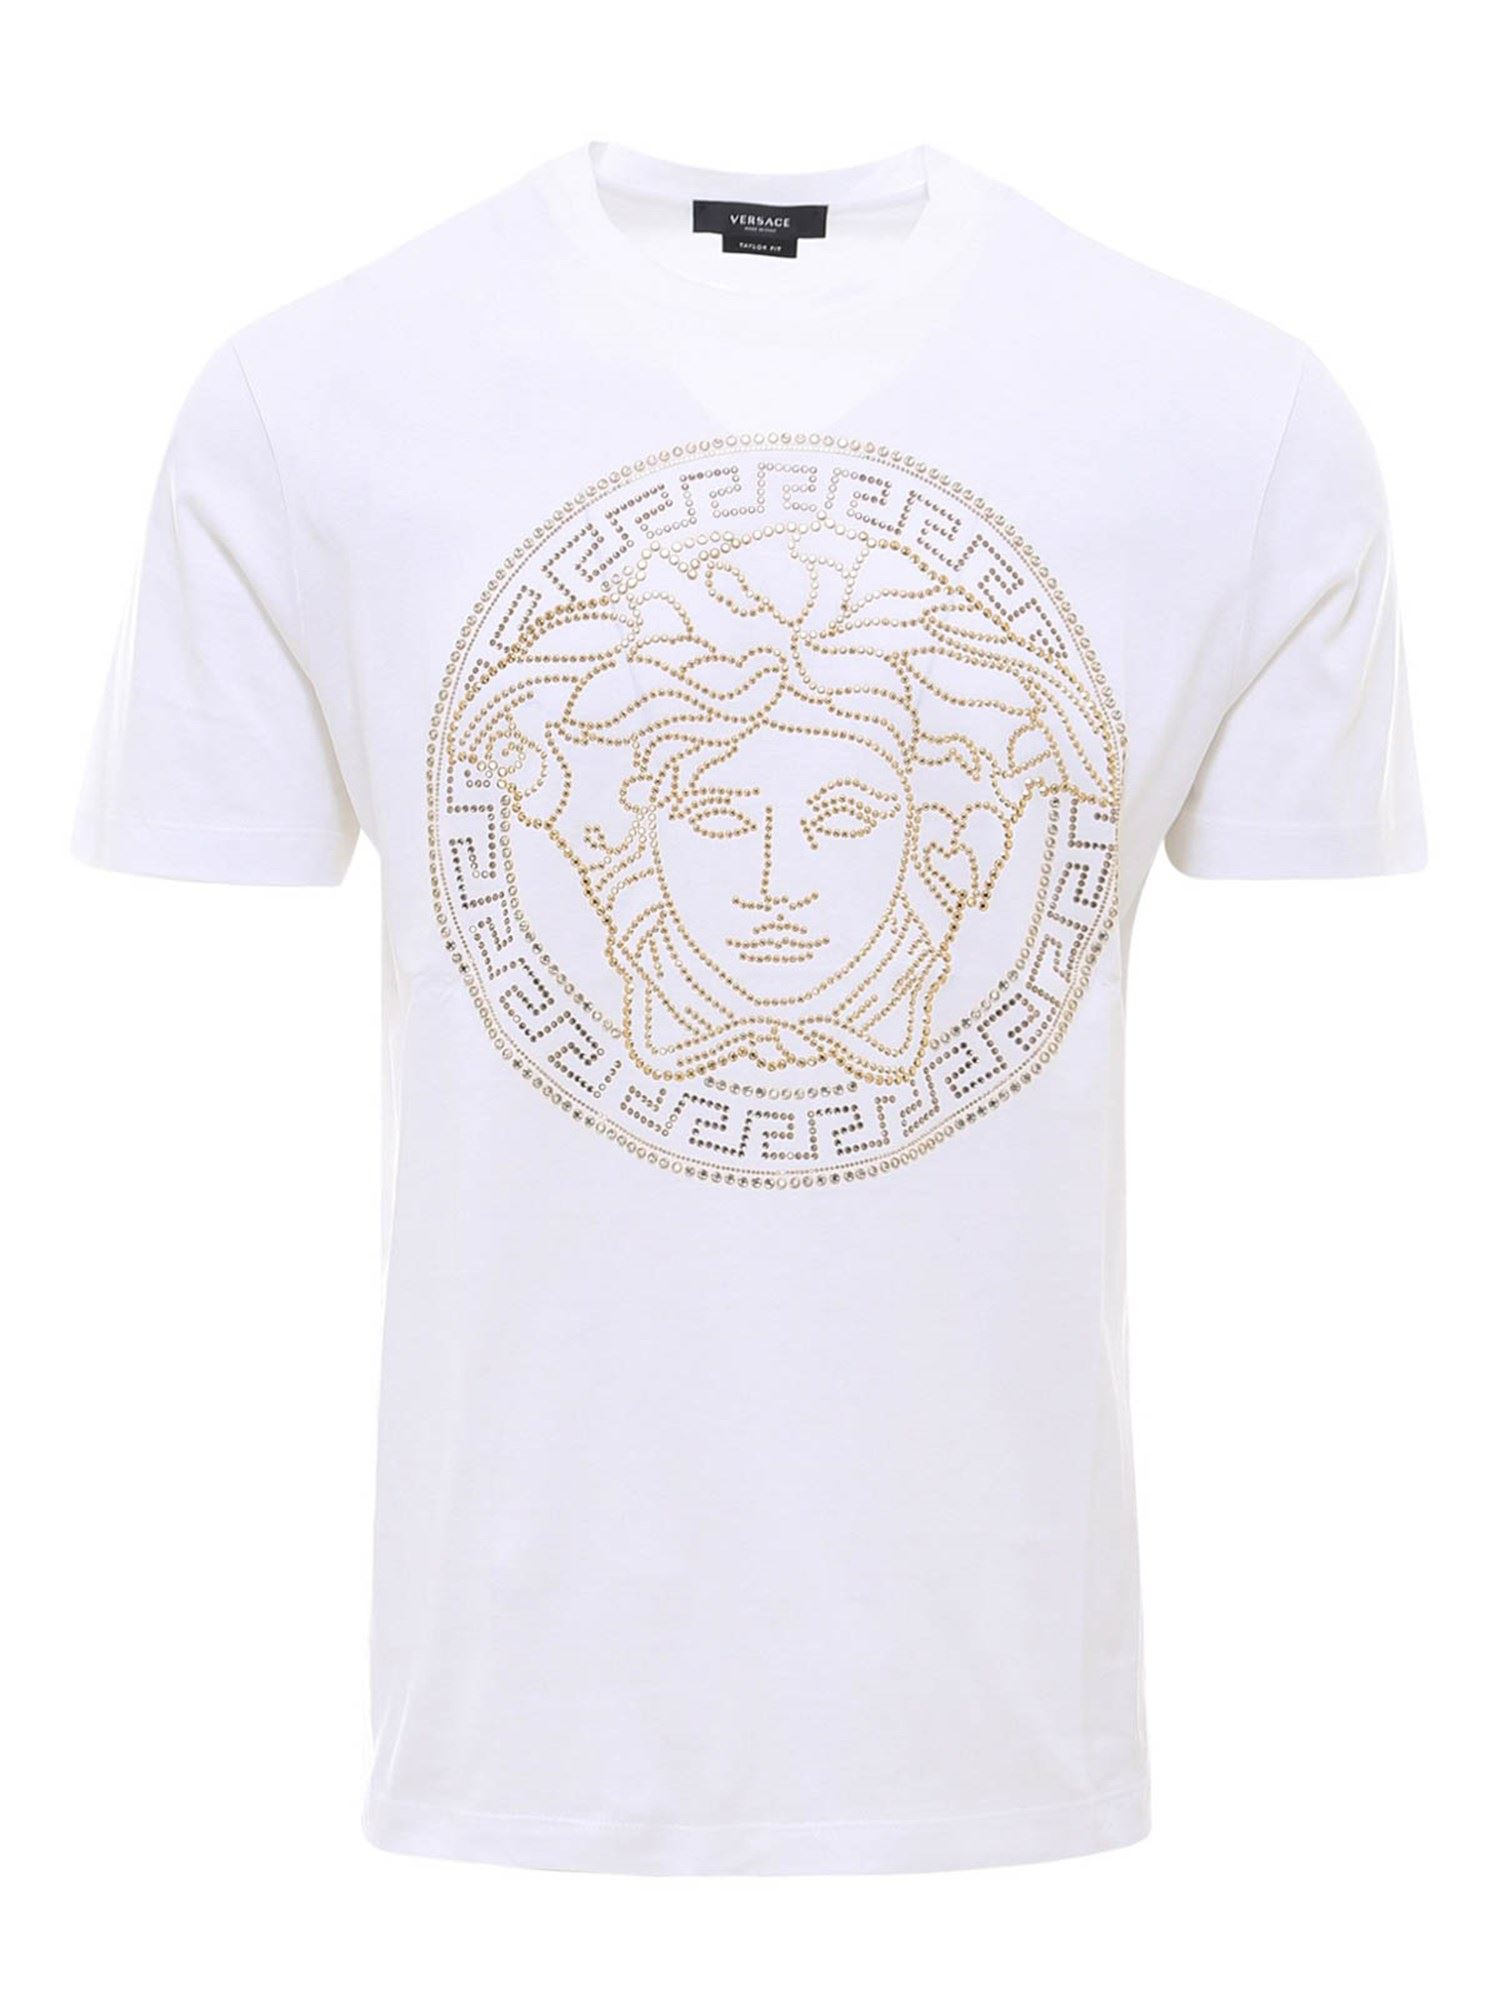 Versace RHINESTONE COTTON T-SHIRT IN WHITE